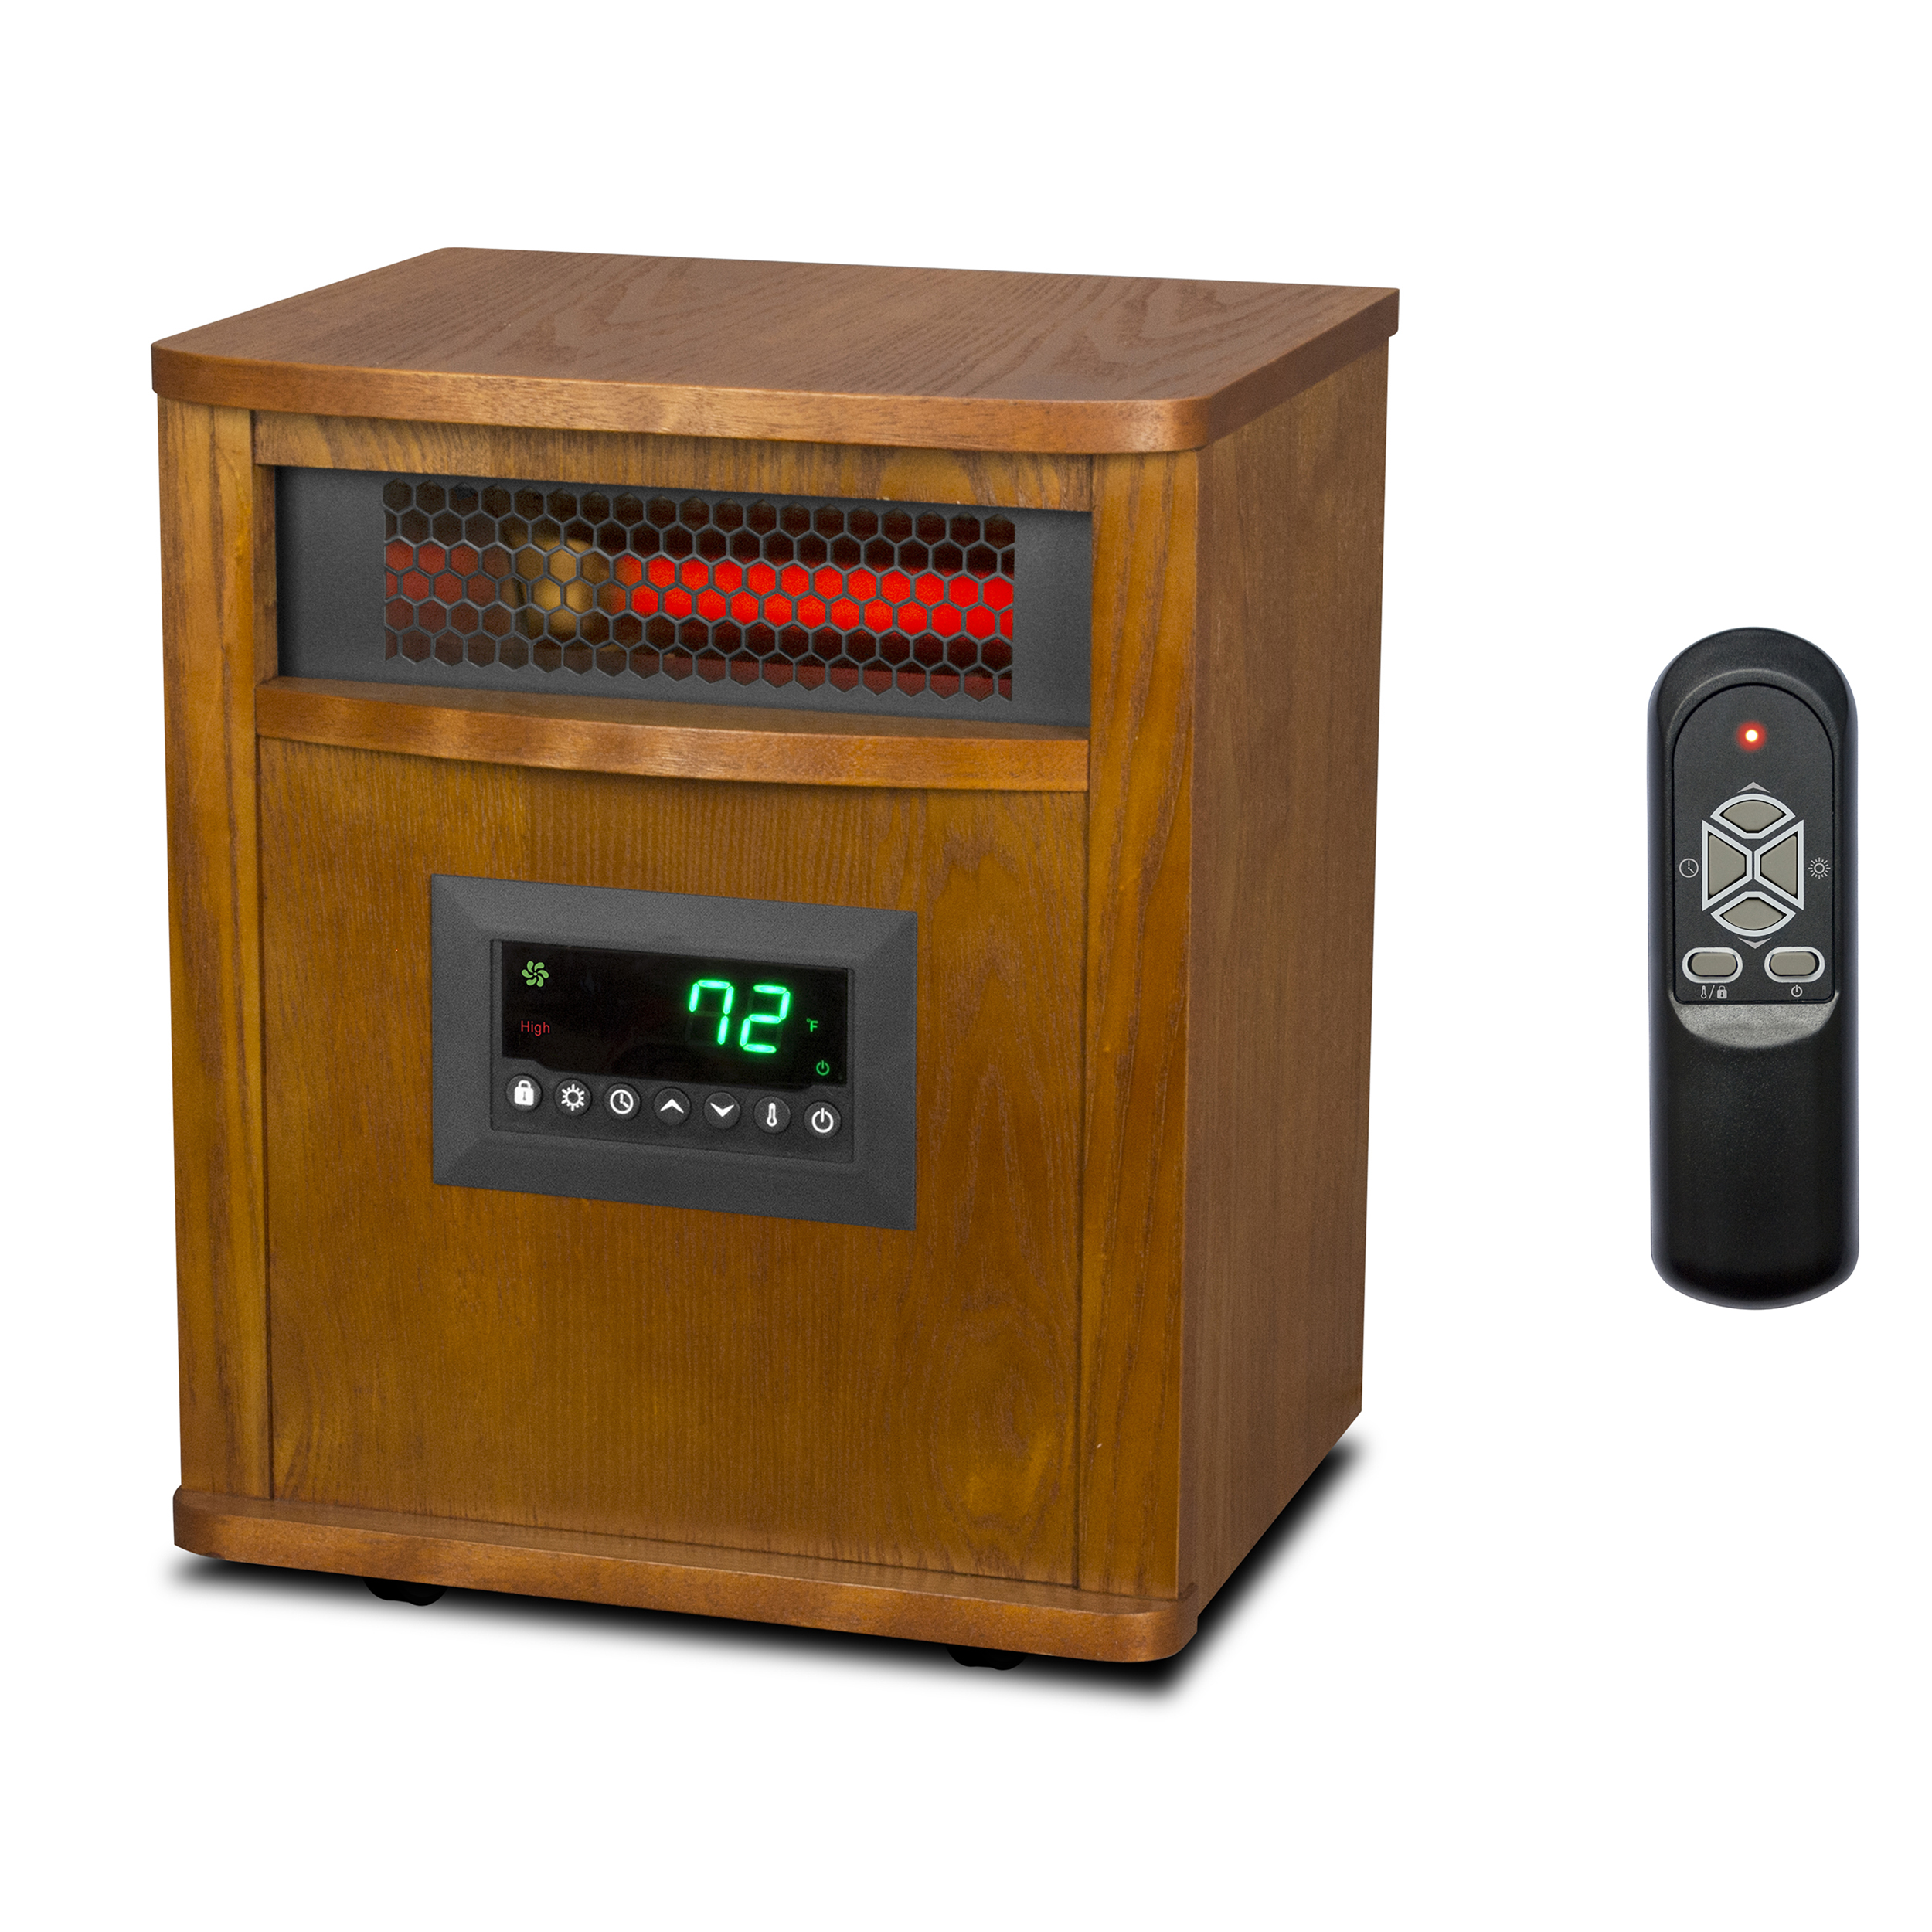 Lifesmart 6 Element 1500 Watt Portable Infrared Quartz Electric Space Heater. Lifesmart 6 Element 1500 Watt Portable Infrared Quartz Electric